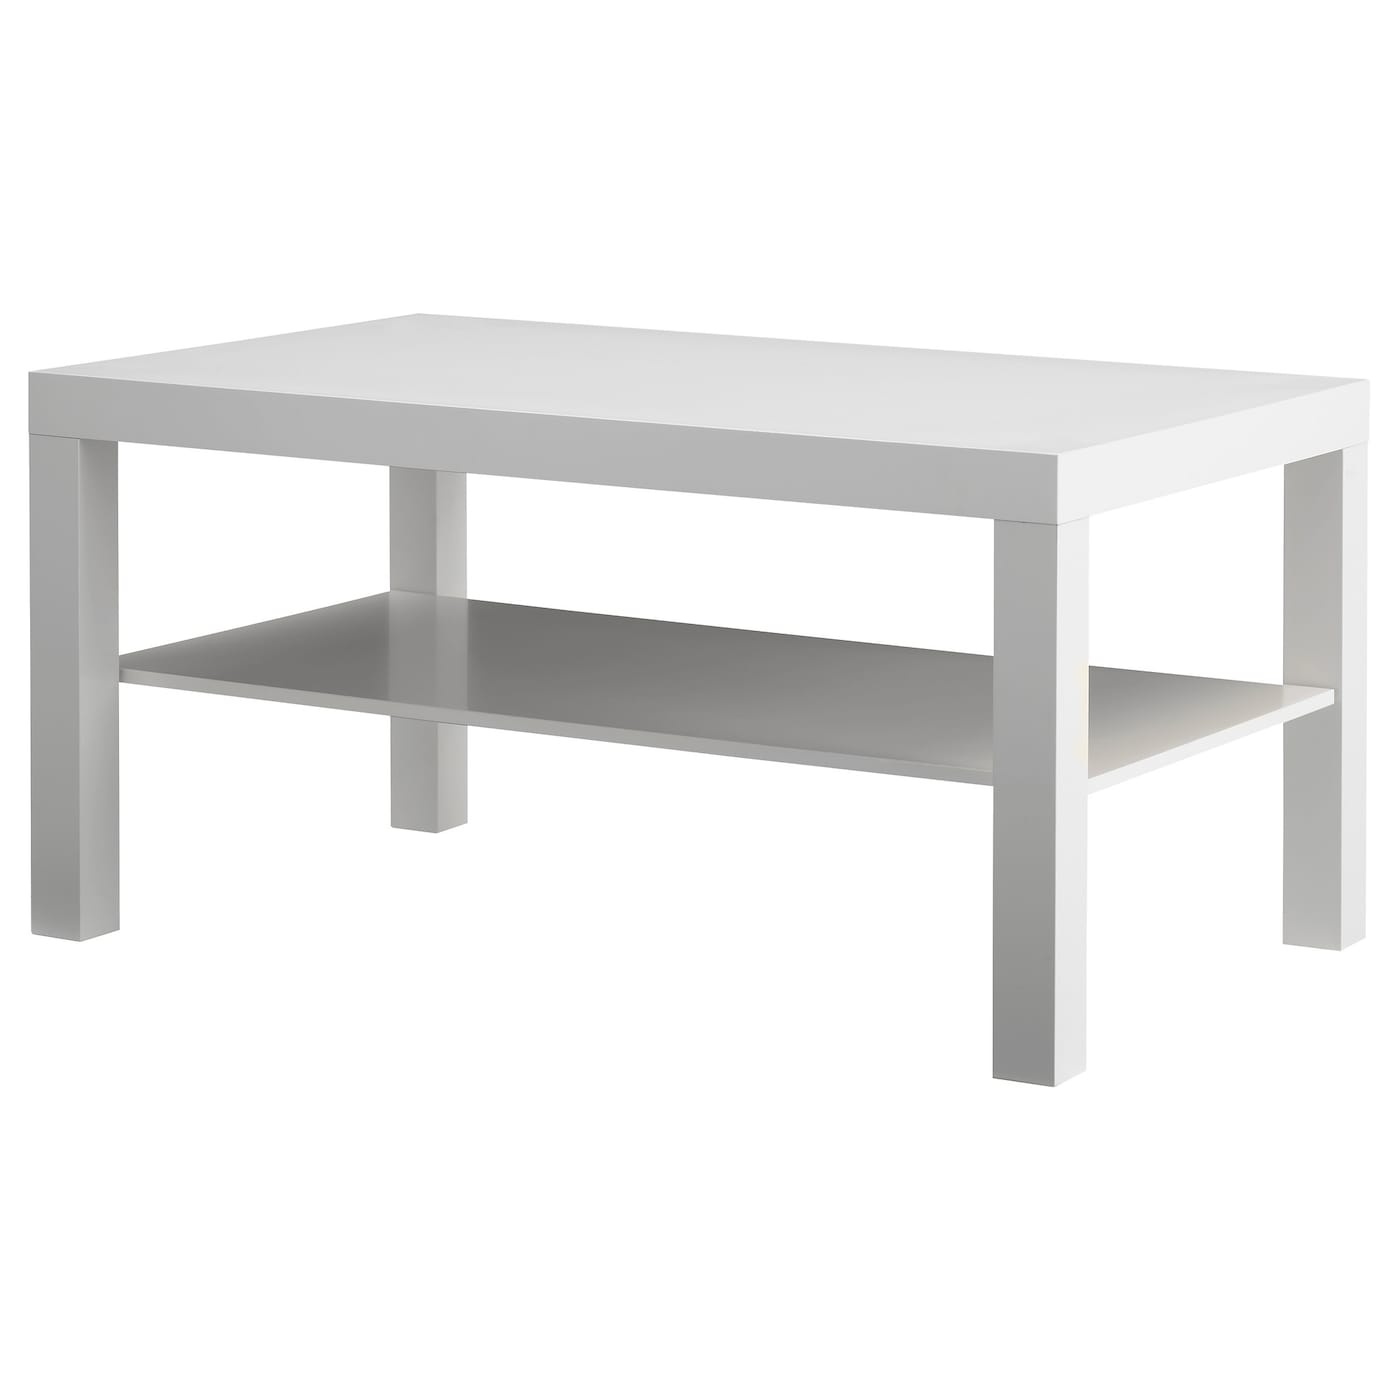 Lack coffee table white 90x55 cm ikea - Table basse verre ikea ...